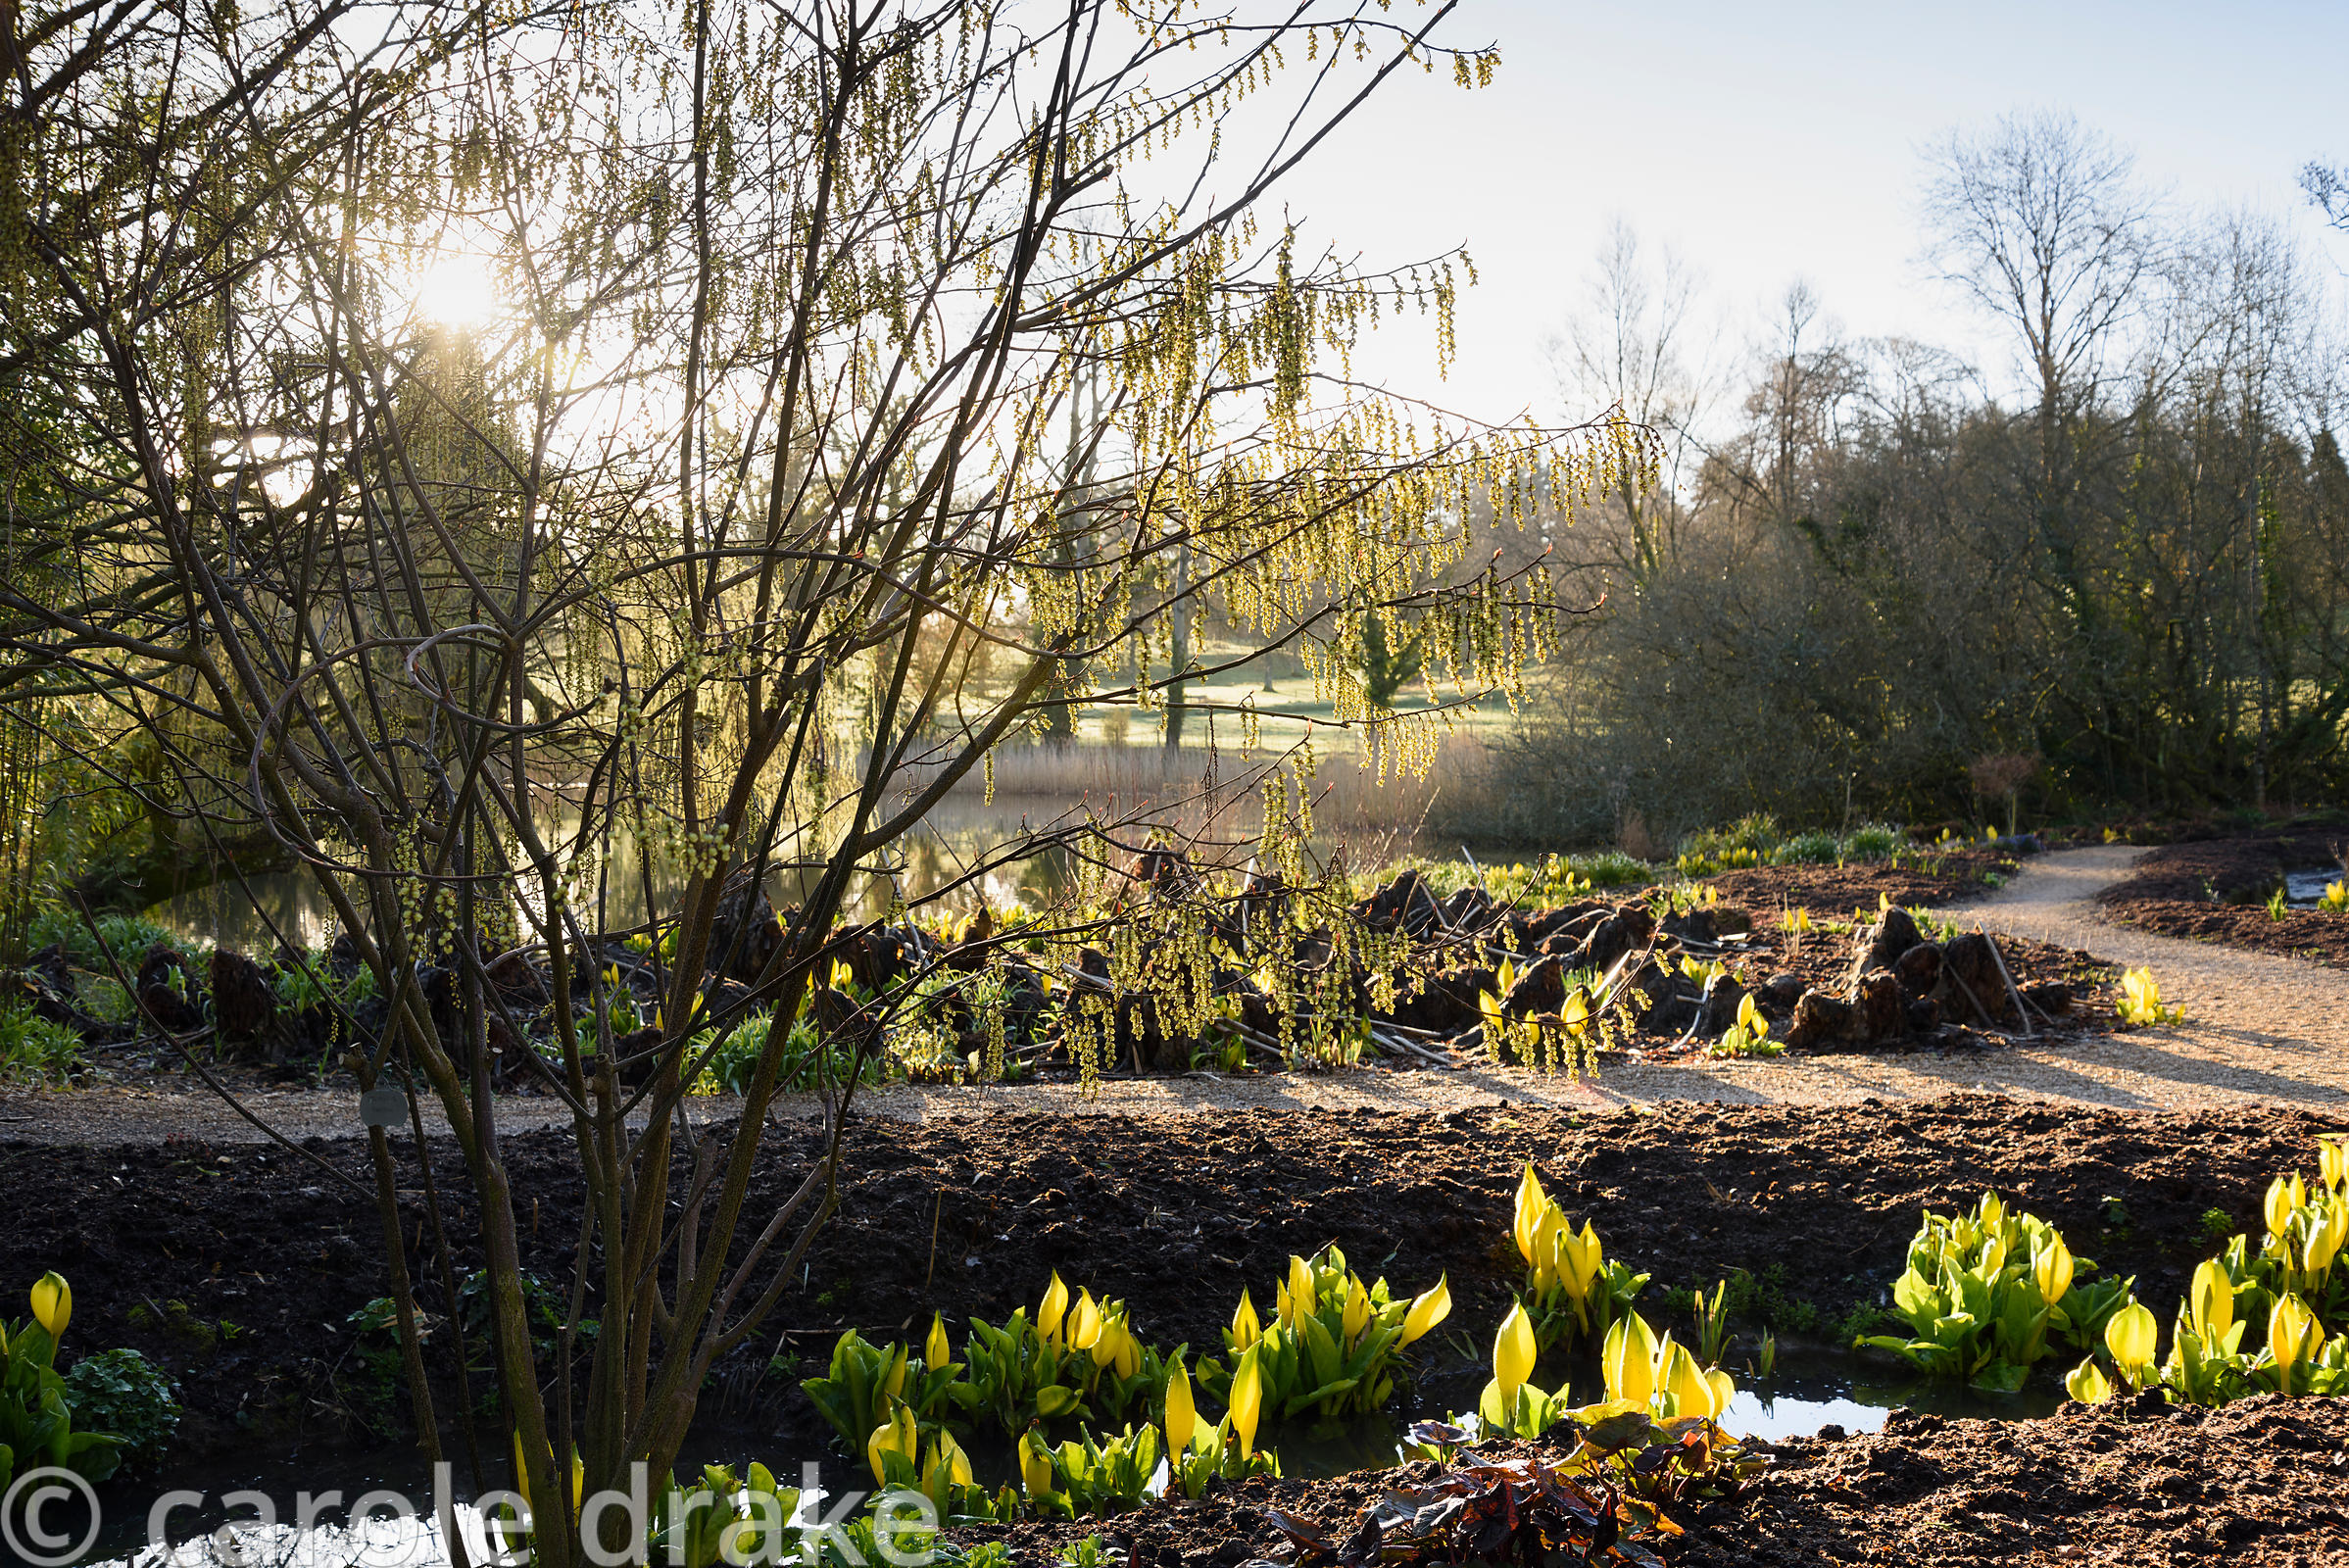 The bog garden at Forde Abbey in April with the new shoots of a weeping willow backlit by morning sunlight amongst Lysichiton...